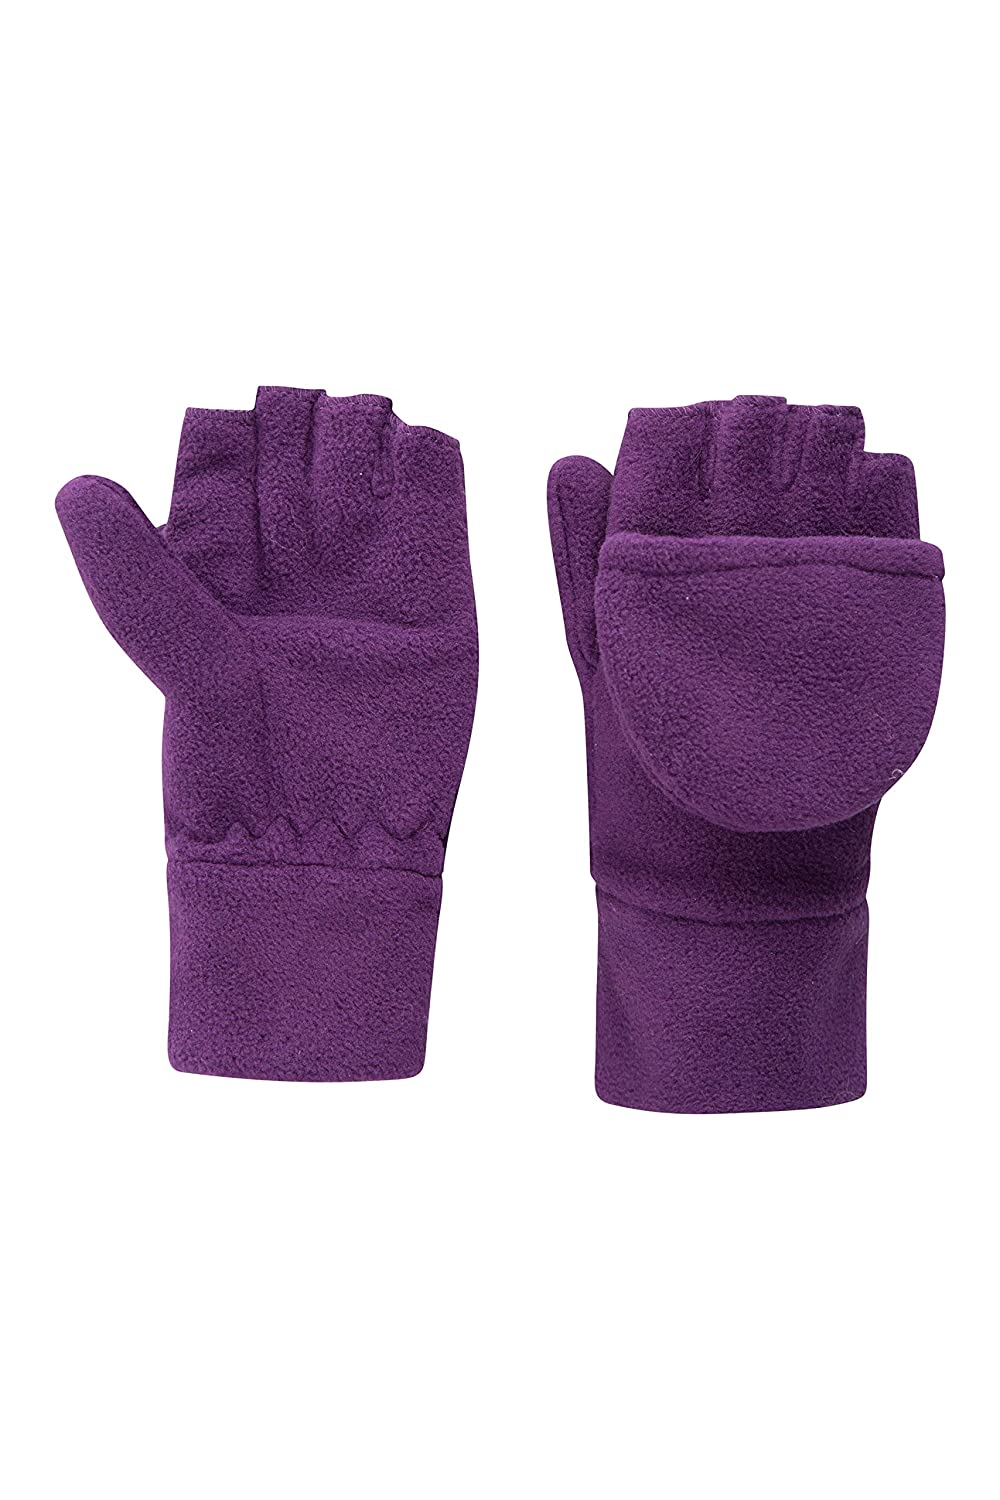 Mountain Warehouse Fingerless Fleece Kids Mitten - Convertible Design, Soft Fleece Fabric for Warm with Elasticised Band - Perfect for Kids Hand Warm & Comfortable